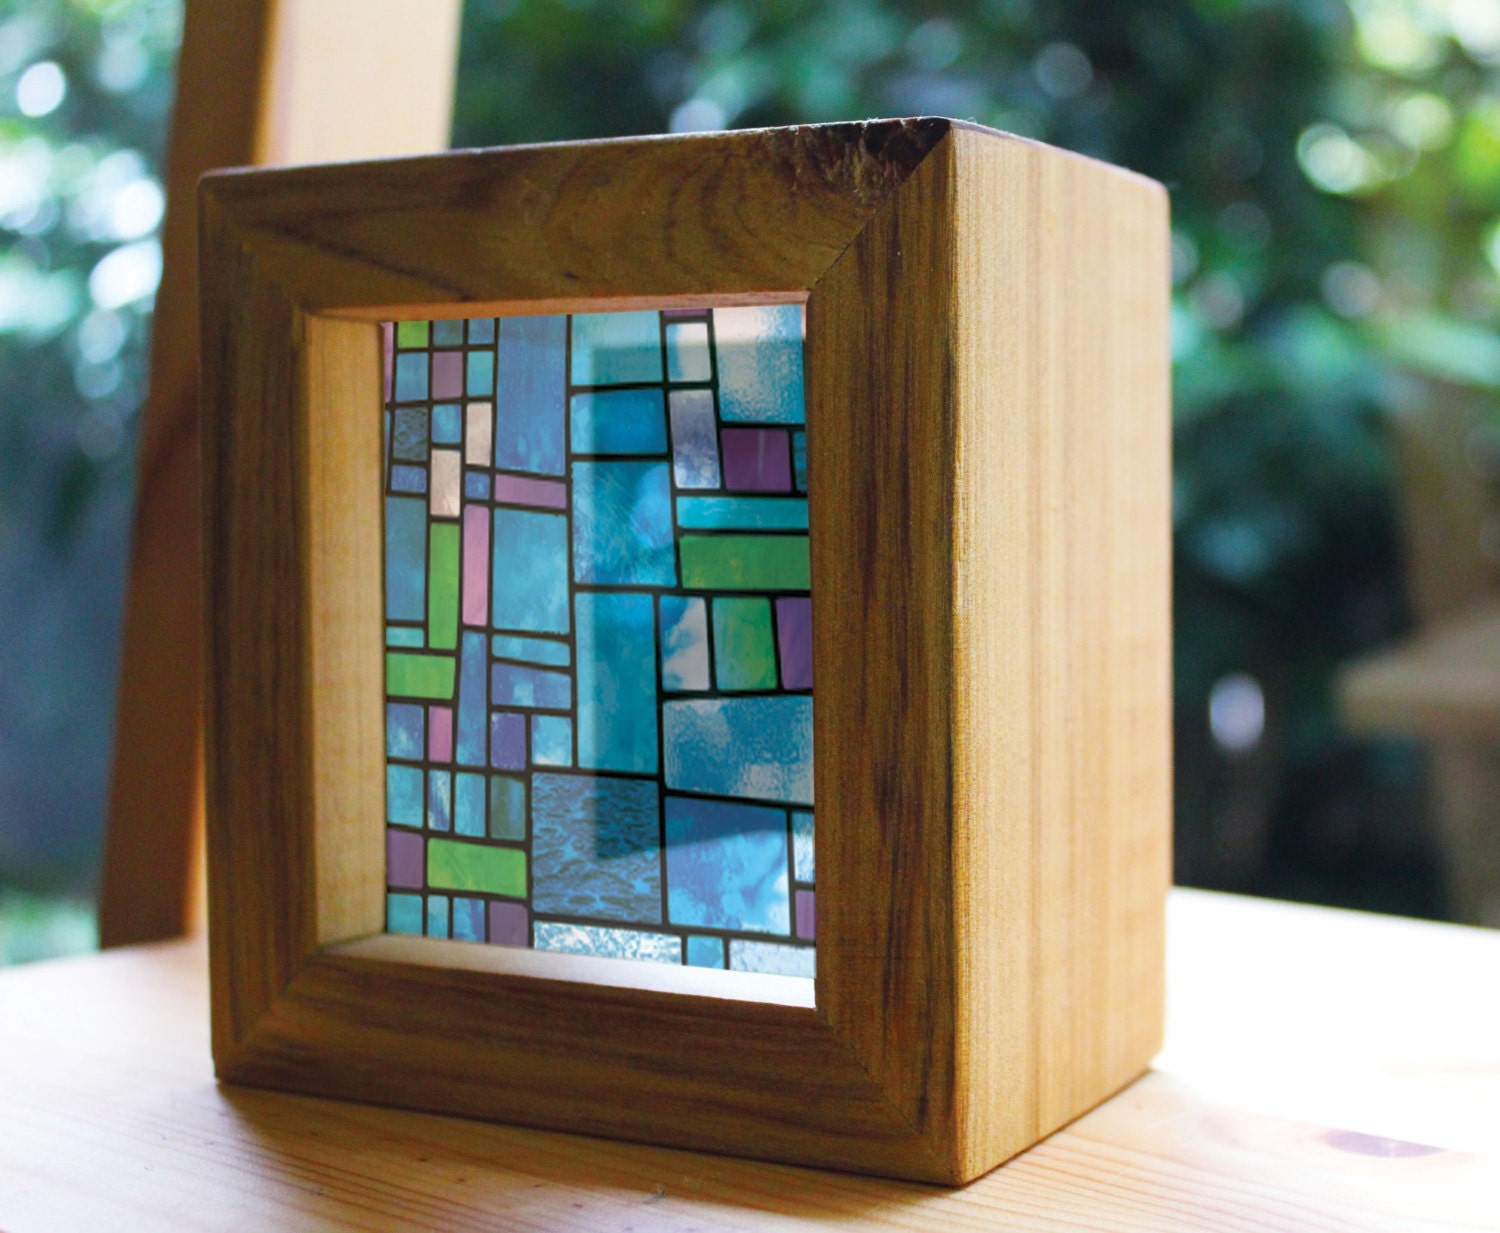 Modern stained glass handmade timber light box see through for Contemporary stained glass